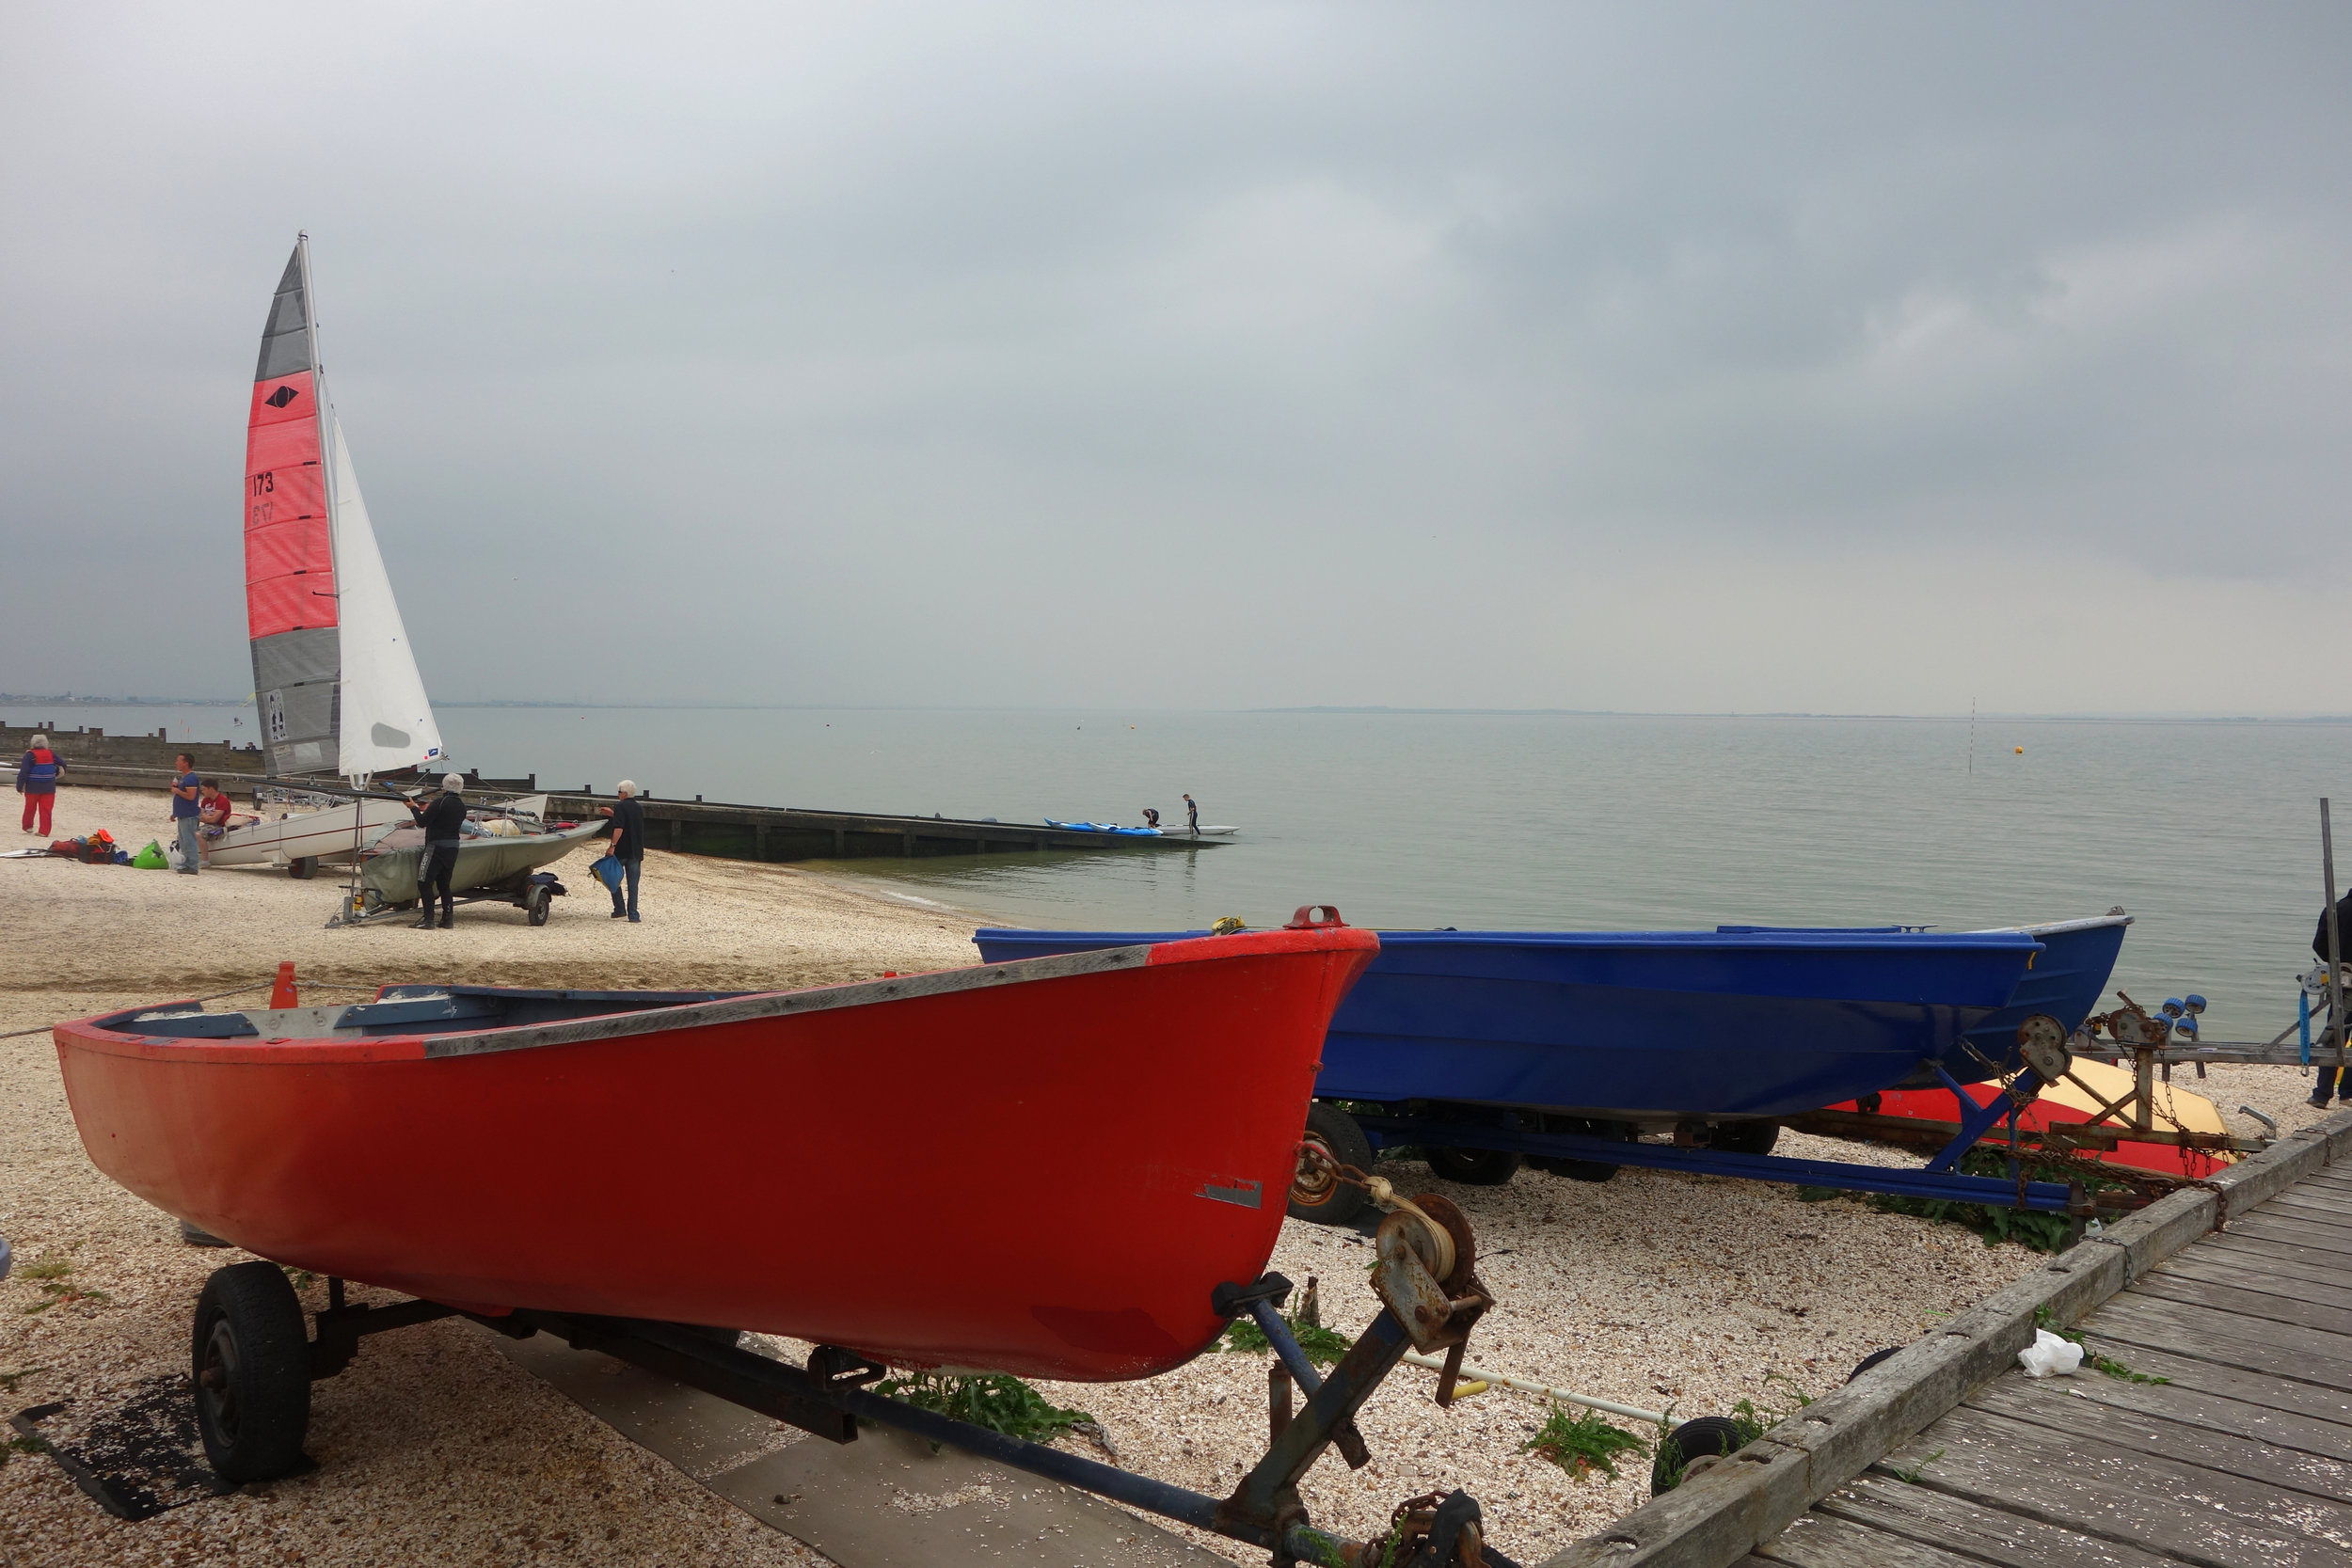 Boats on Whitstable beach